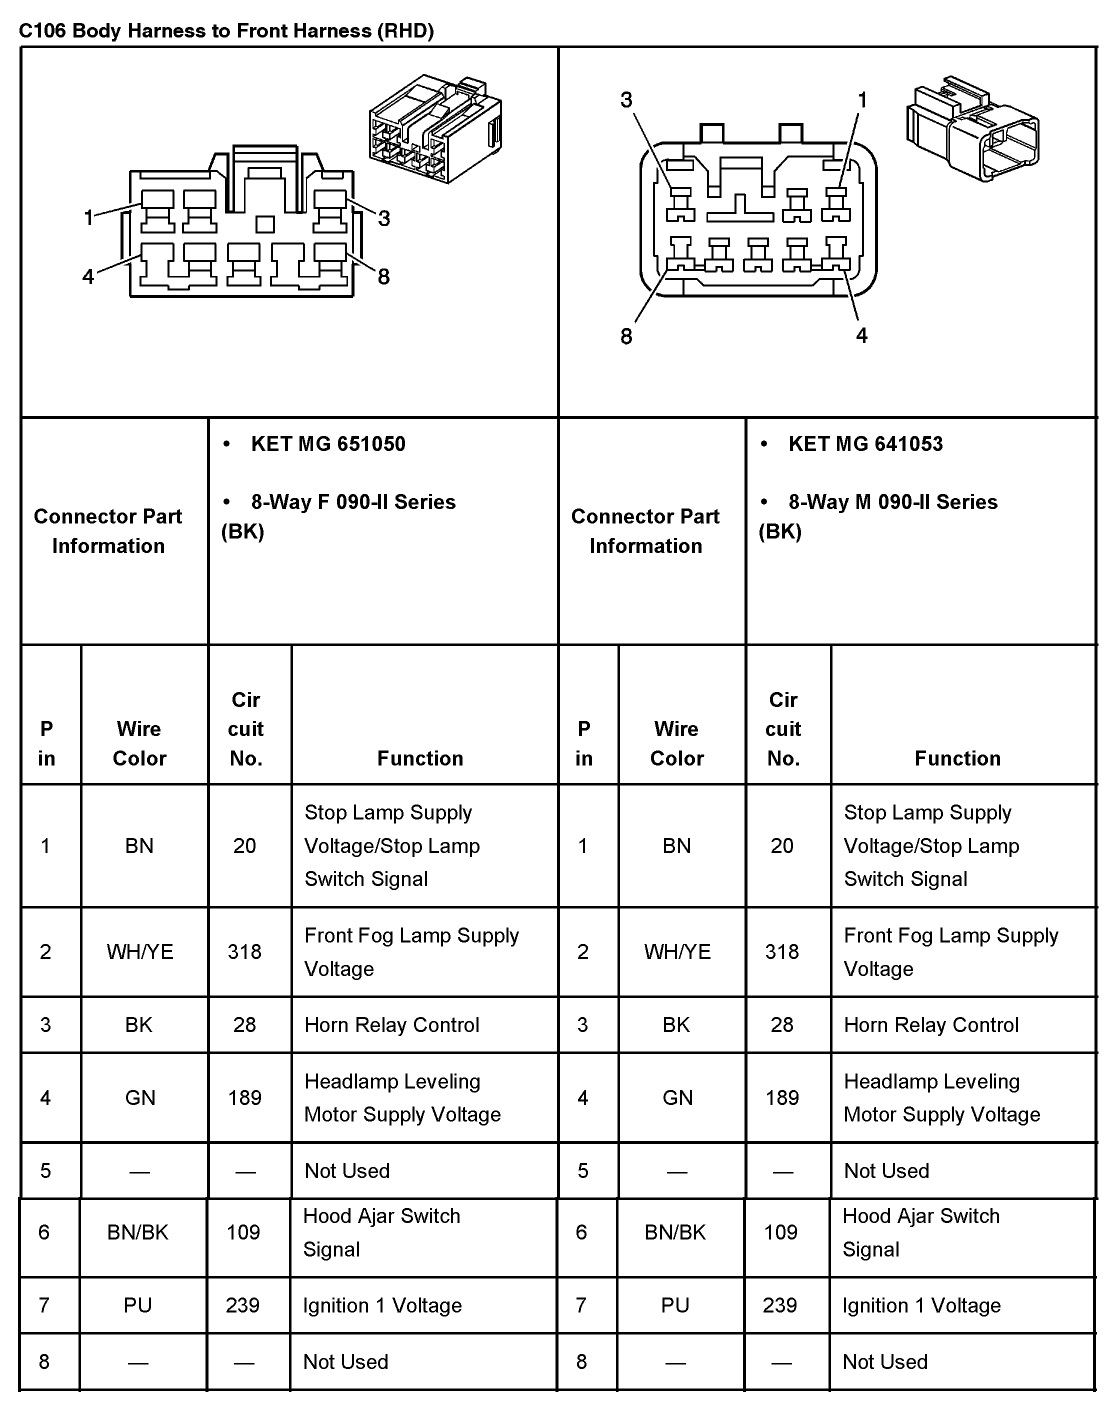 2005 Tahoe Fuse Box Location Wiring Library Scion Xb Interior 2004 2011 Chevrolet Aveo Master Connector List And Diagrams